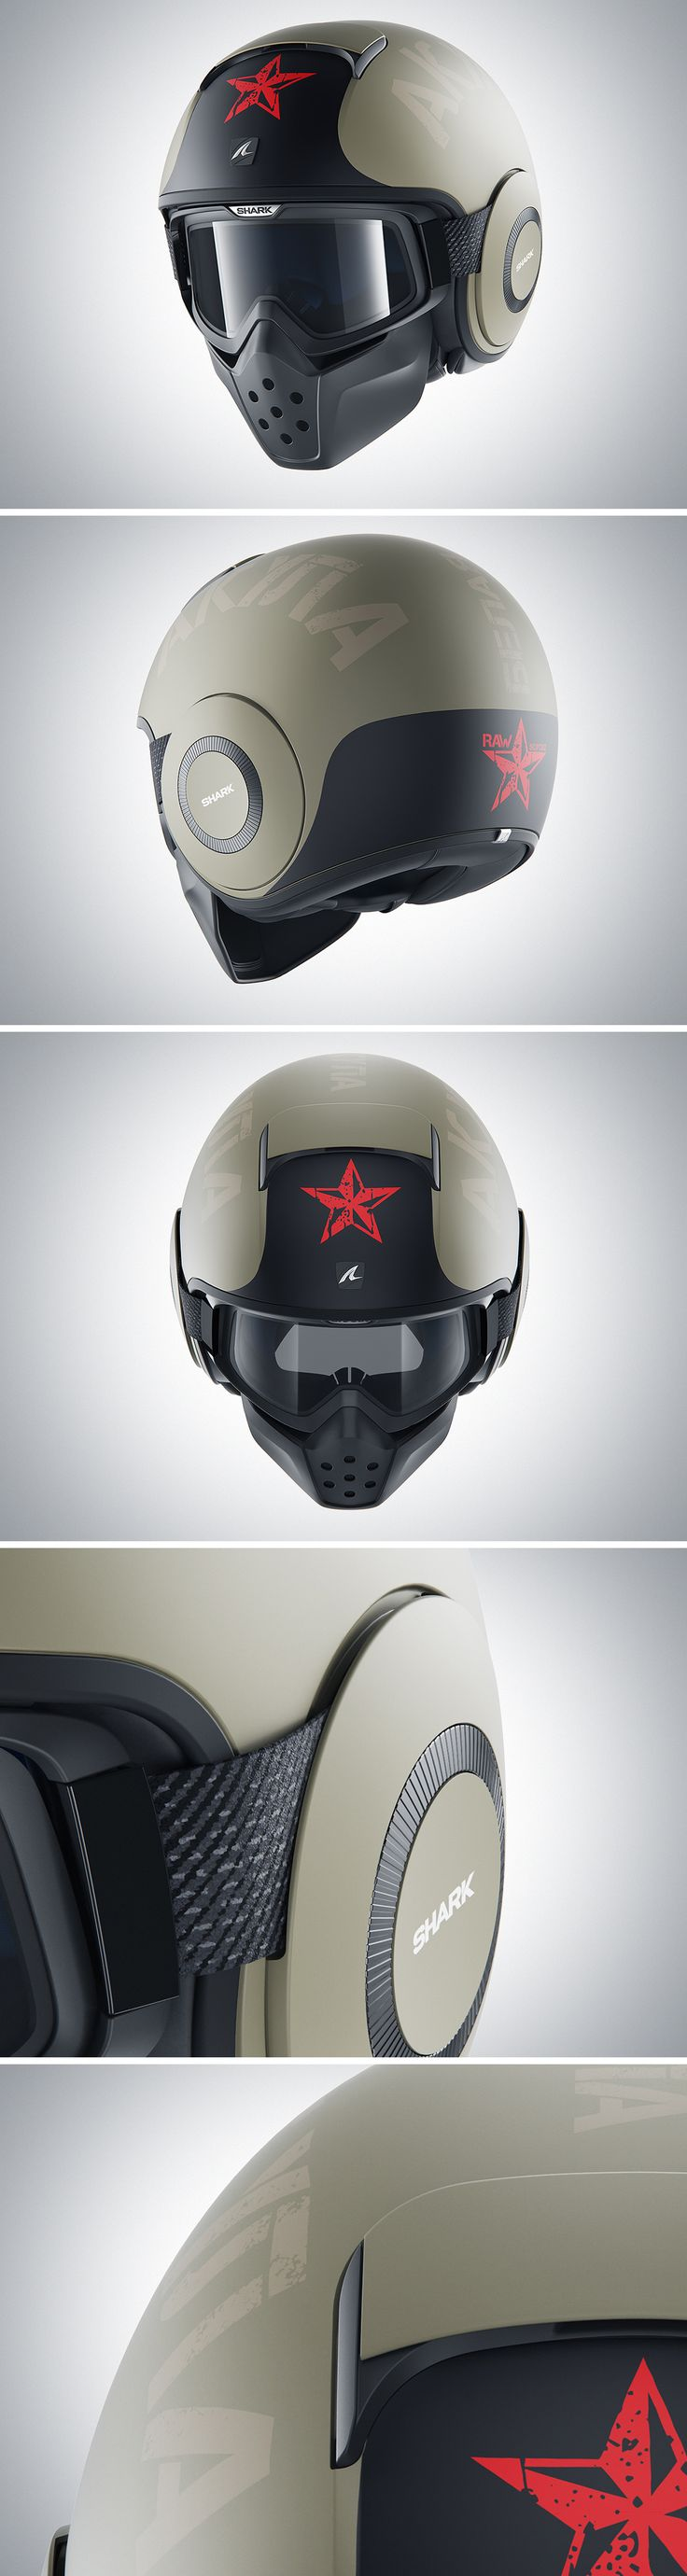 Fully CGI project. We were asked to produce almost 300 shots for the 2016 Shark Helmets Catalogue. Software: 3ds max + HDR Light Studio + V-ray +  Photoshop Follow me on facebook